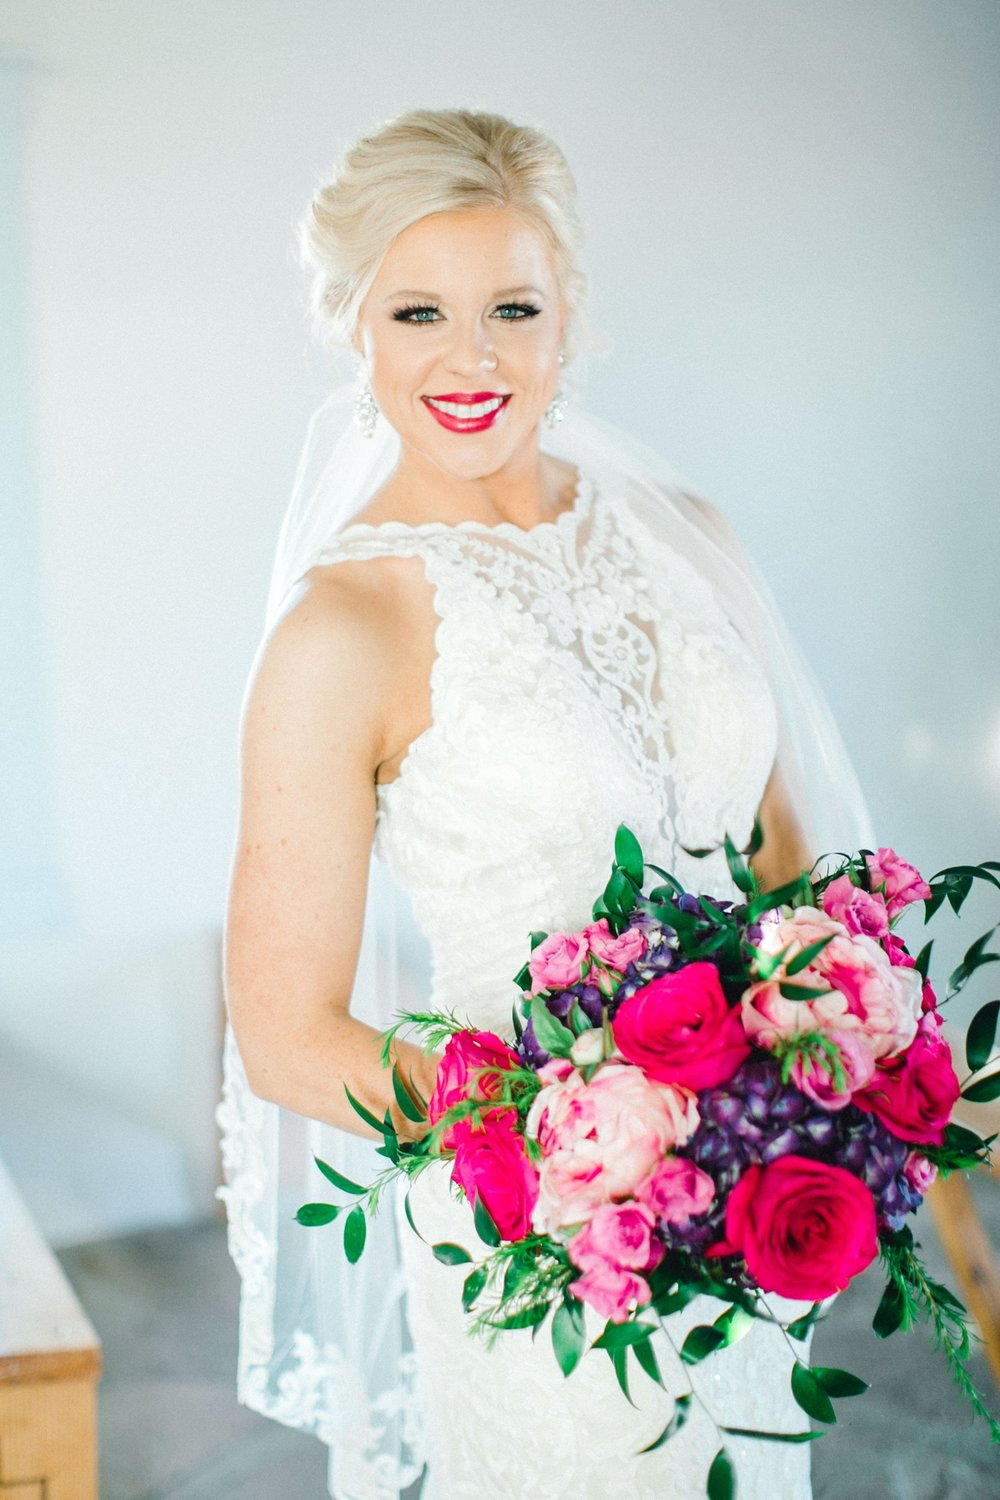 Jenna-evans-bridals-balmorhea-texas-fort-davis-wedding-photographer-lubbock-photographer__0030.jpg